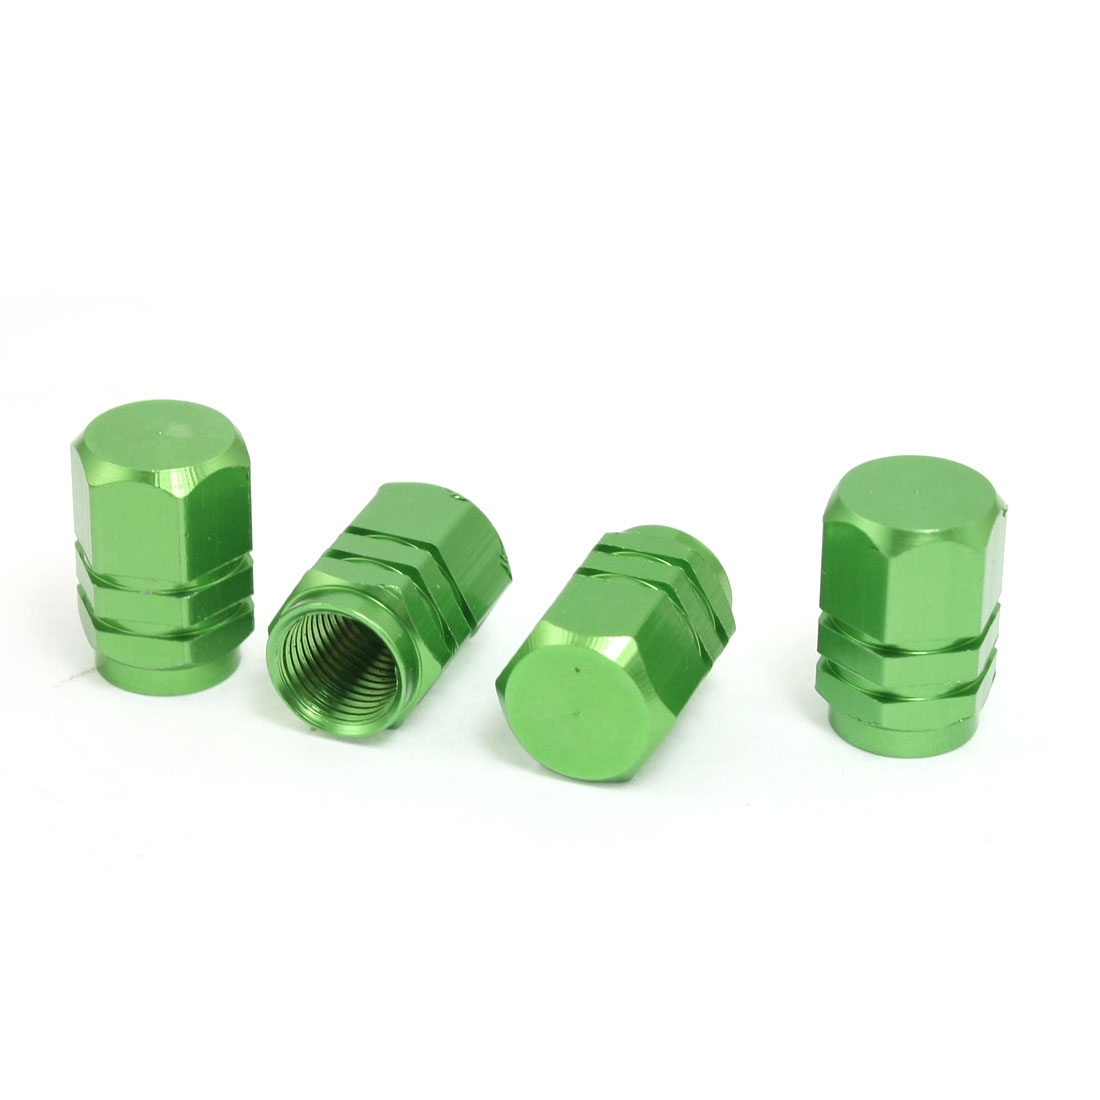 Car Vehicle Hexagon Tyre Tire Valve Stems Caps Cover Green 4 Pcs